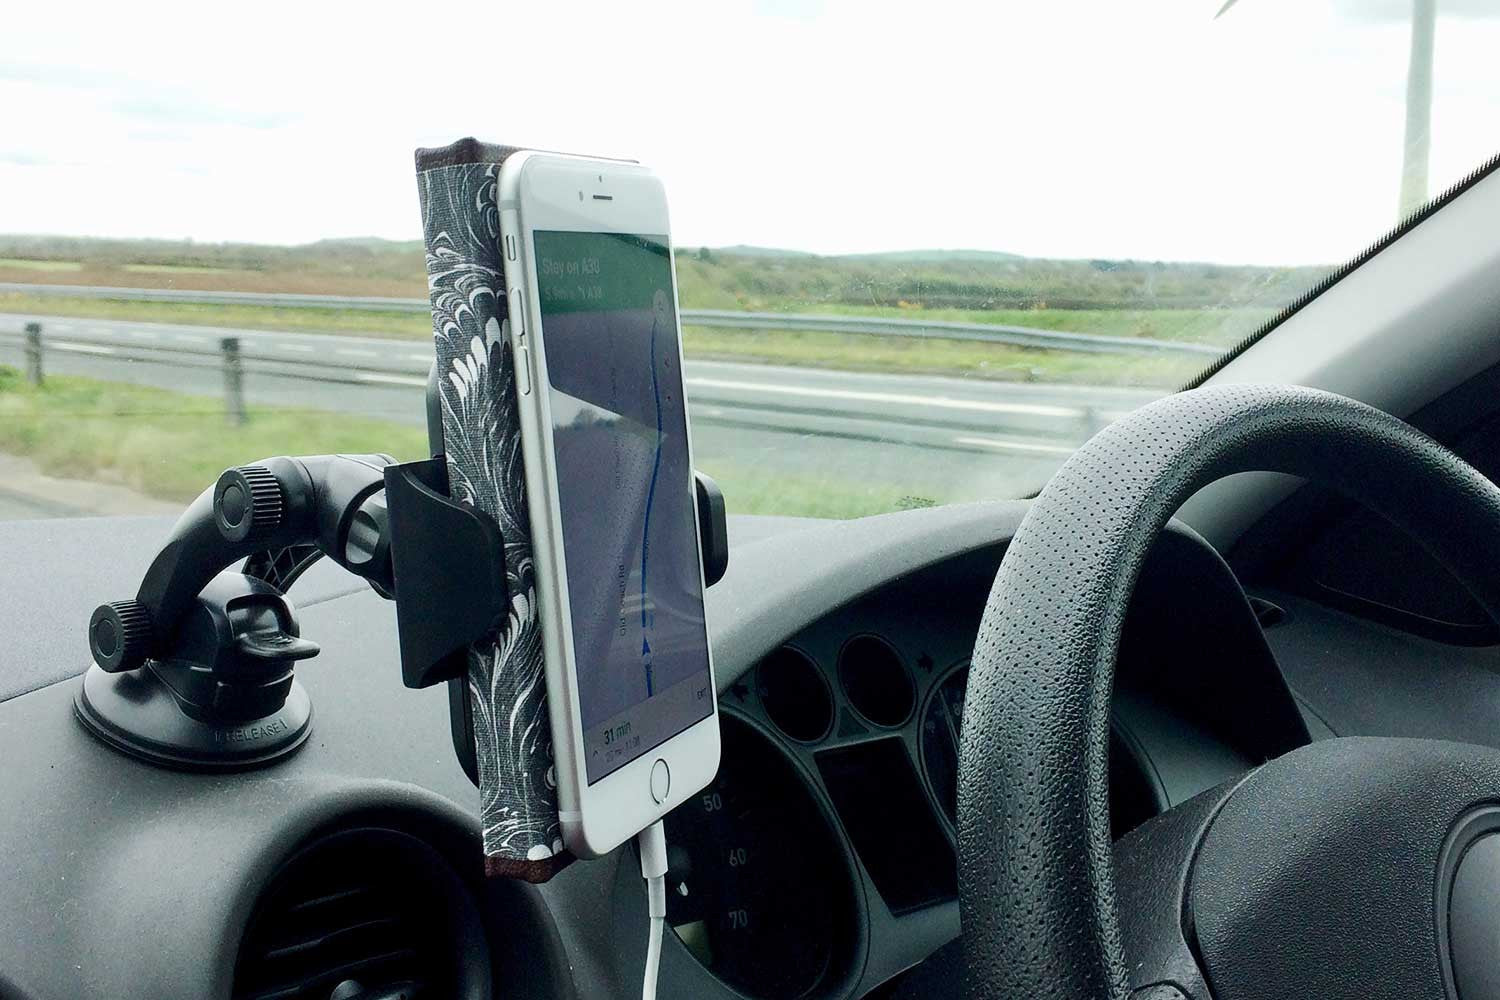 Luxury leather phone cases can be used in a car satnav